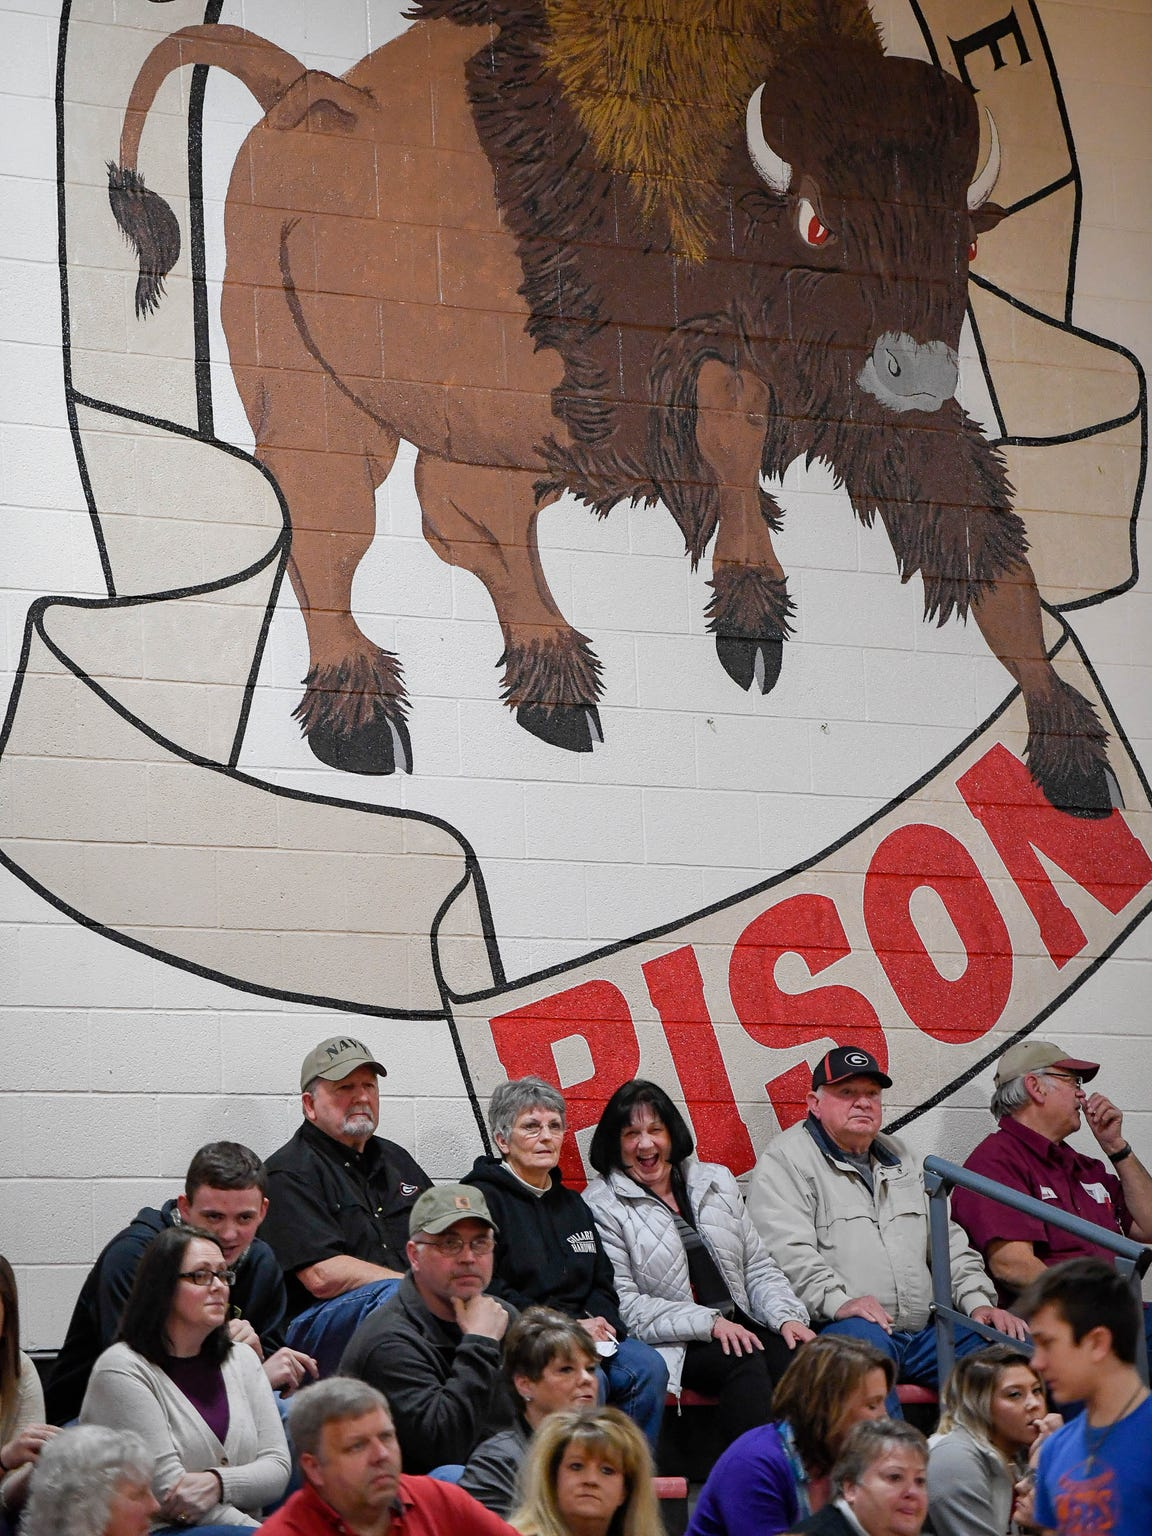 Community support in the stands at the Bison gym in